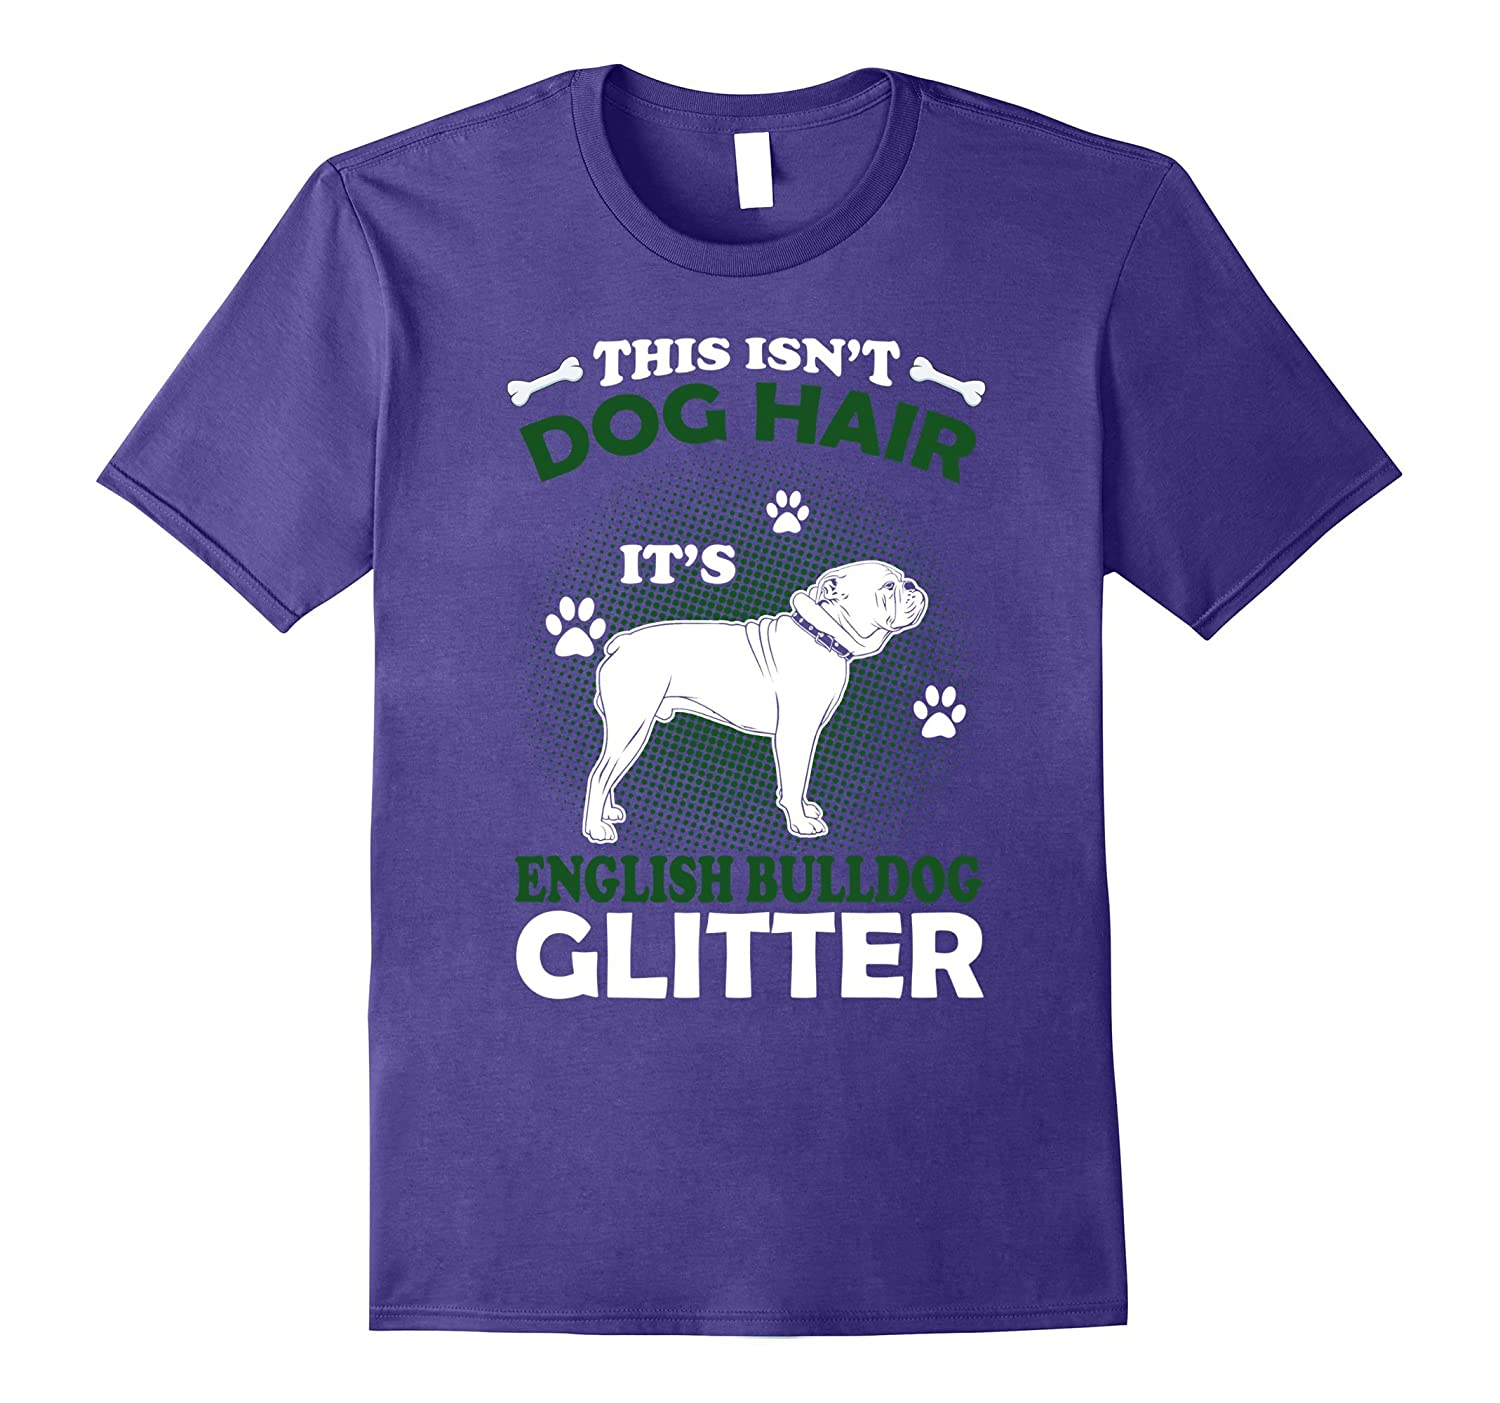 This Isn't Dog Hair It's English Bulldog Glitter T Shirt-FL